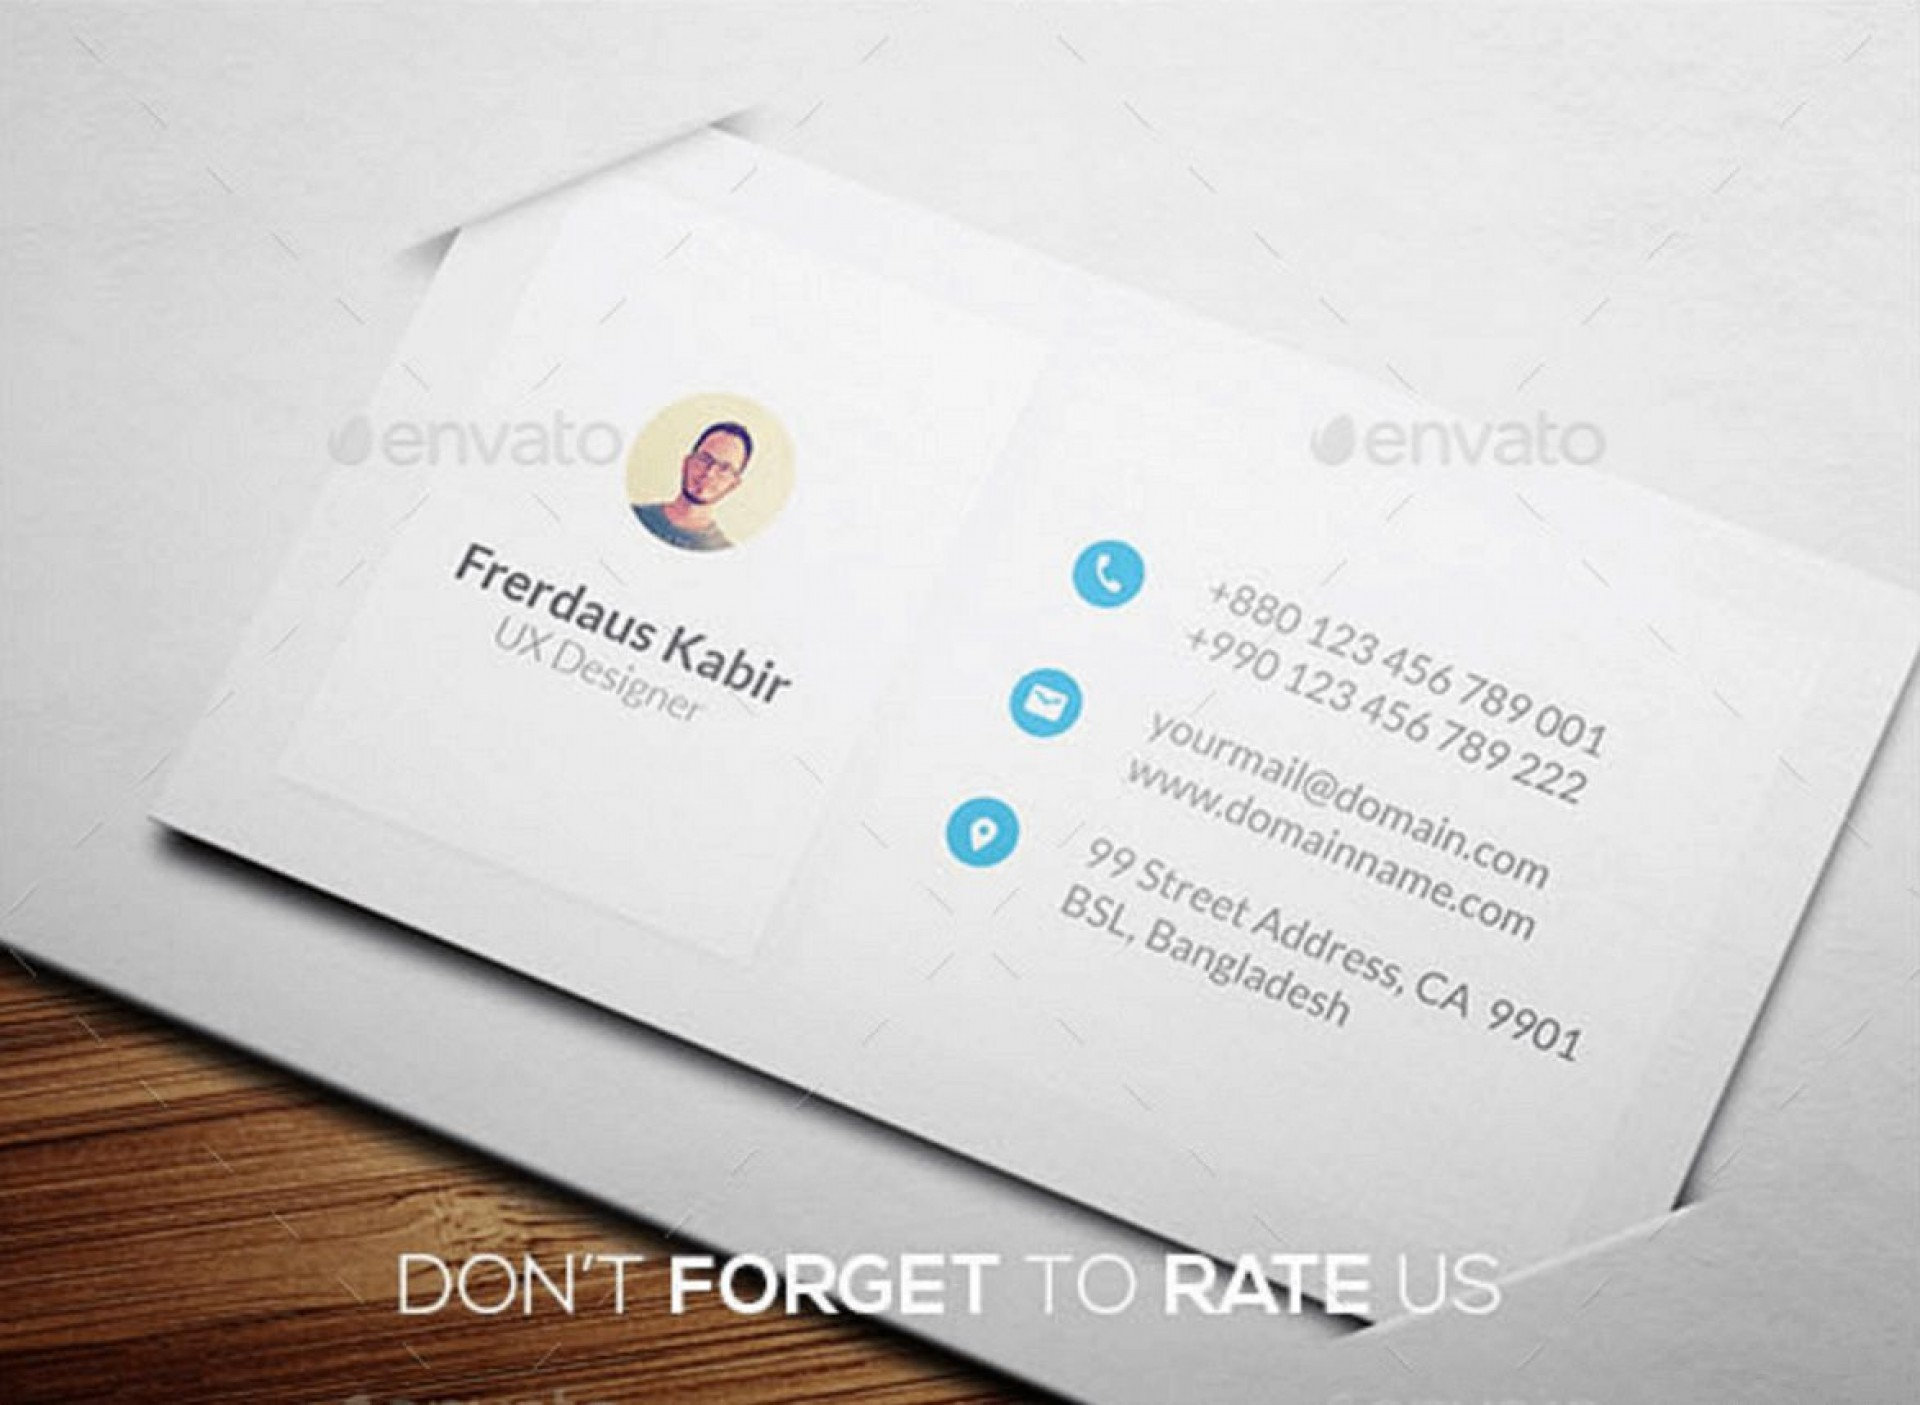 009 Sensational Personal Busines Card Template Example  Trainer Design Psd Fitnes1920